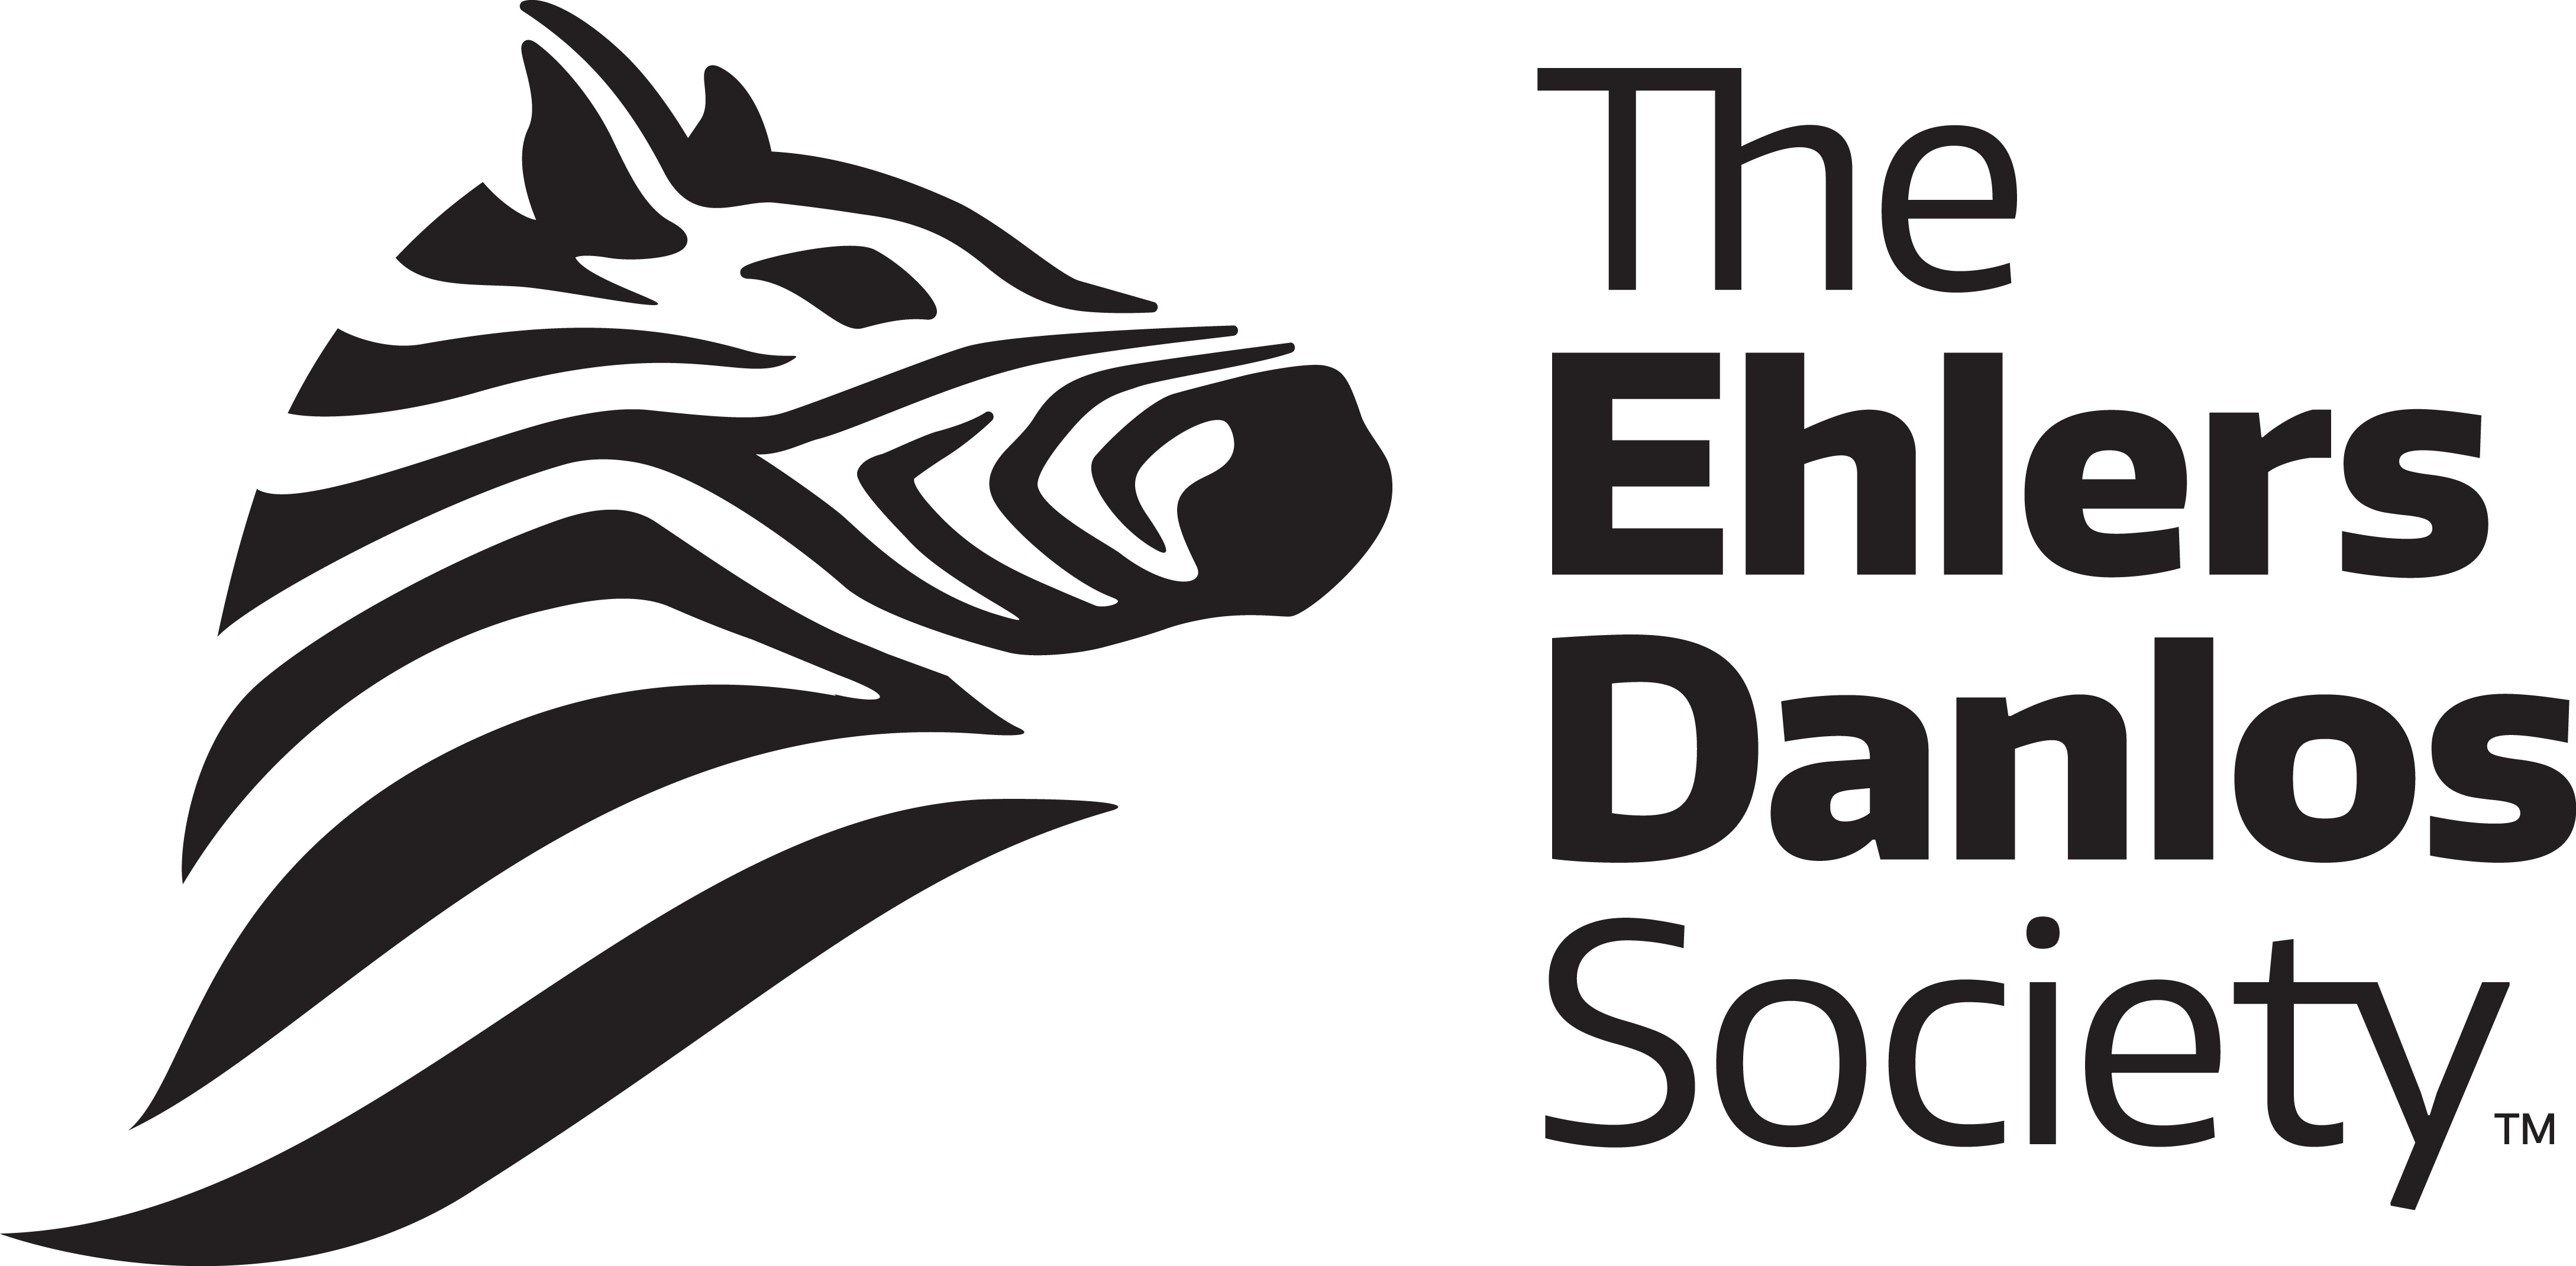 The Ehlers-Danlos Society